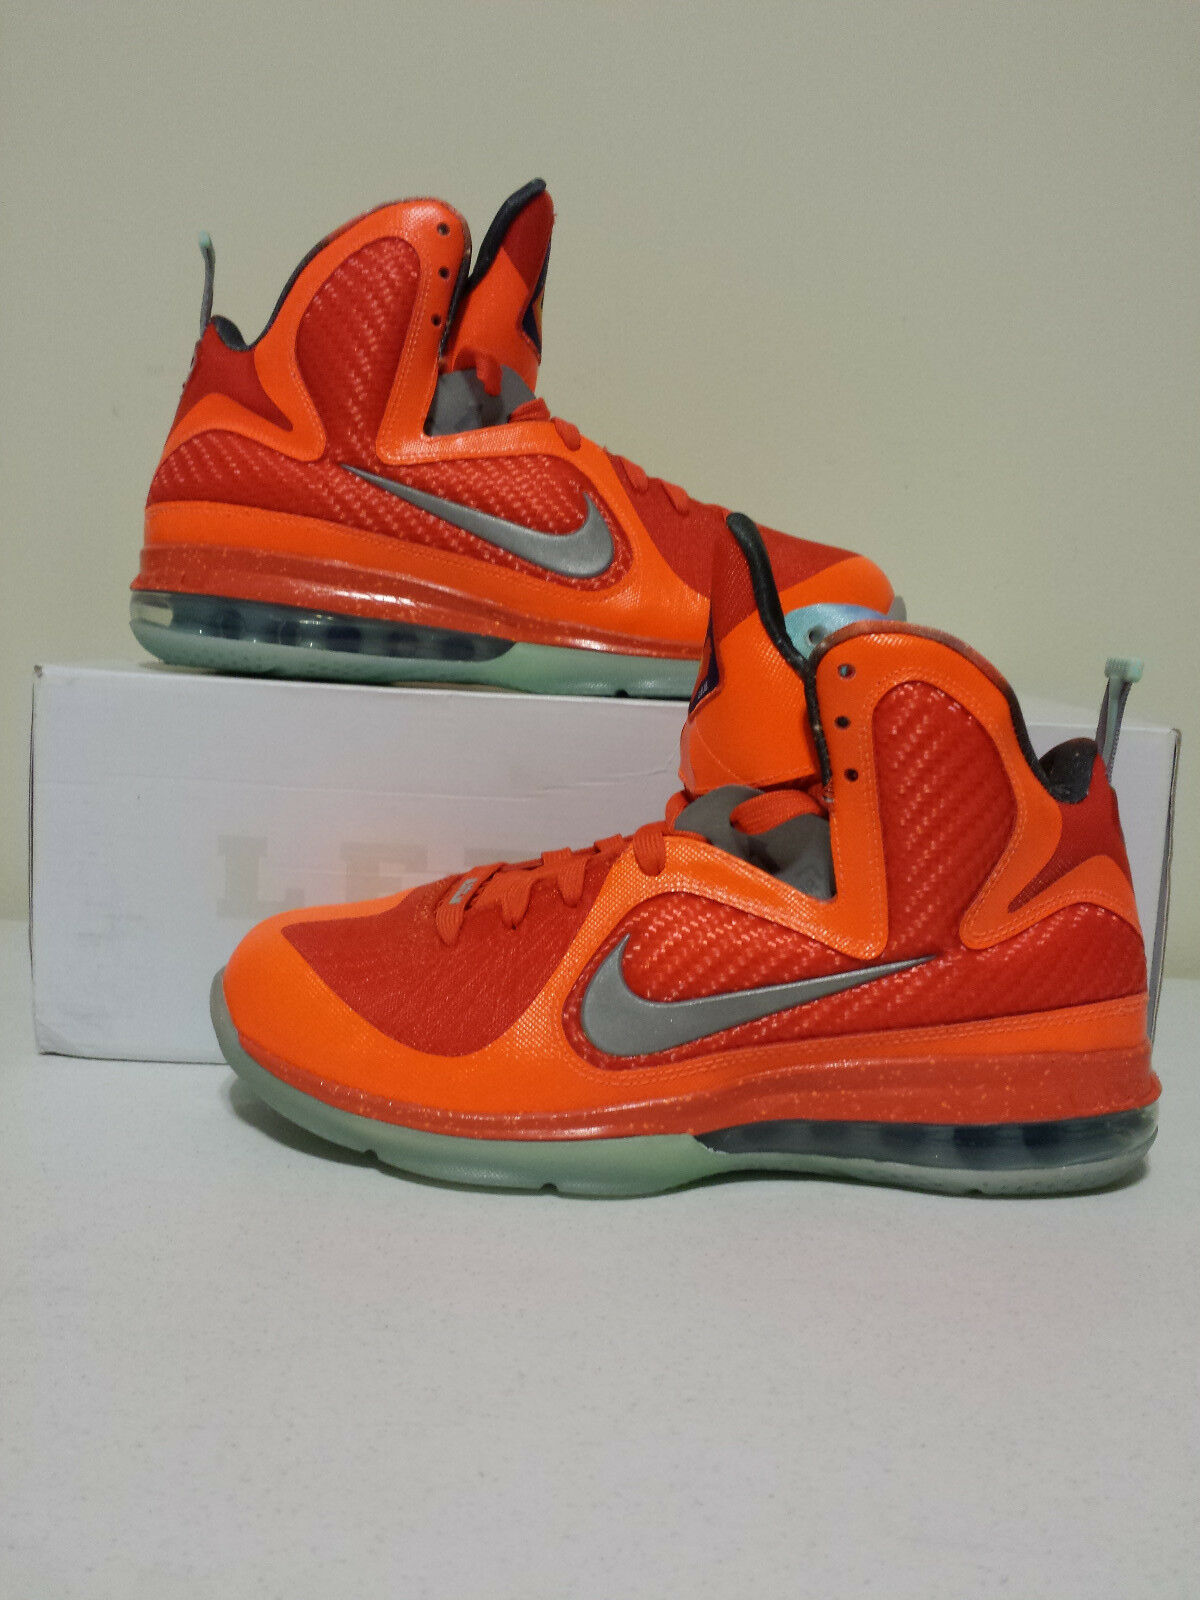 Nike Air Lebron 9 All-Star Galaxy Price reduction best-selling model of the brand